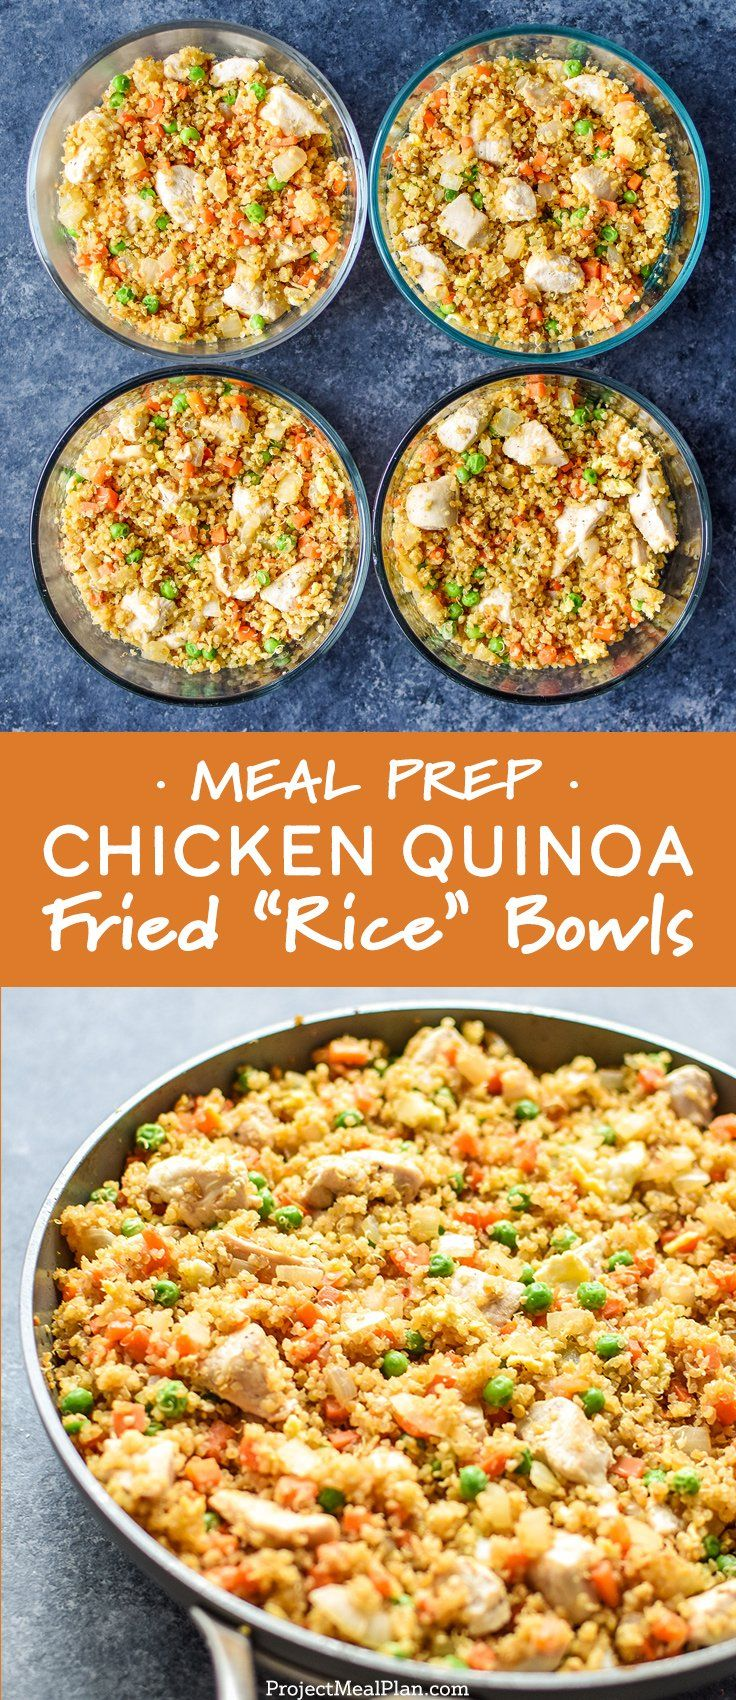 "Photo of Meal Prep Chicken Quinoa Fried ""Rice"" Bowls"